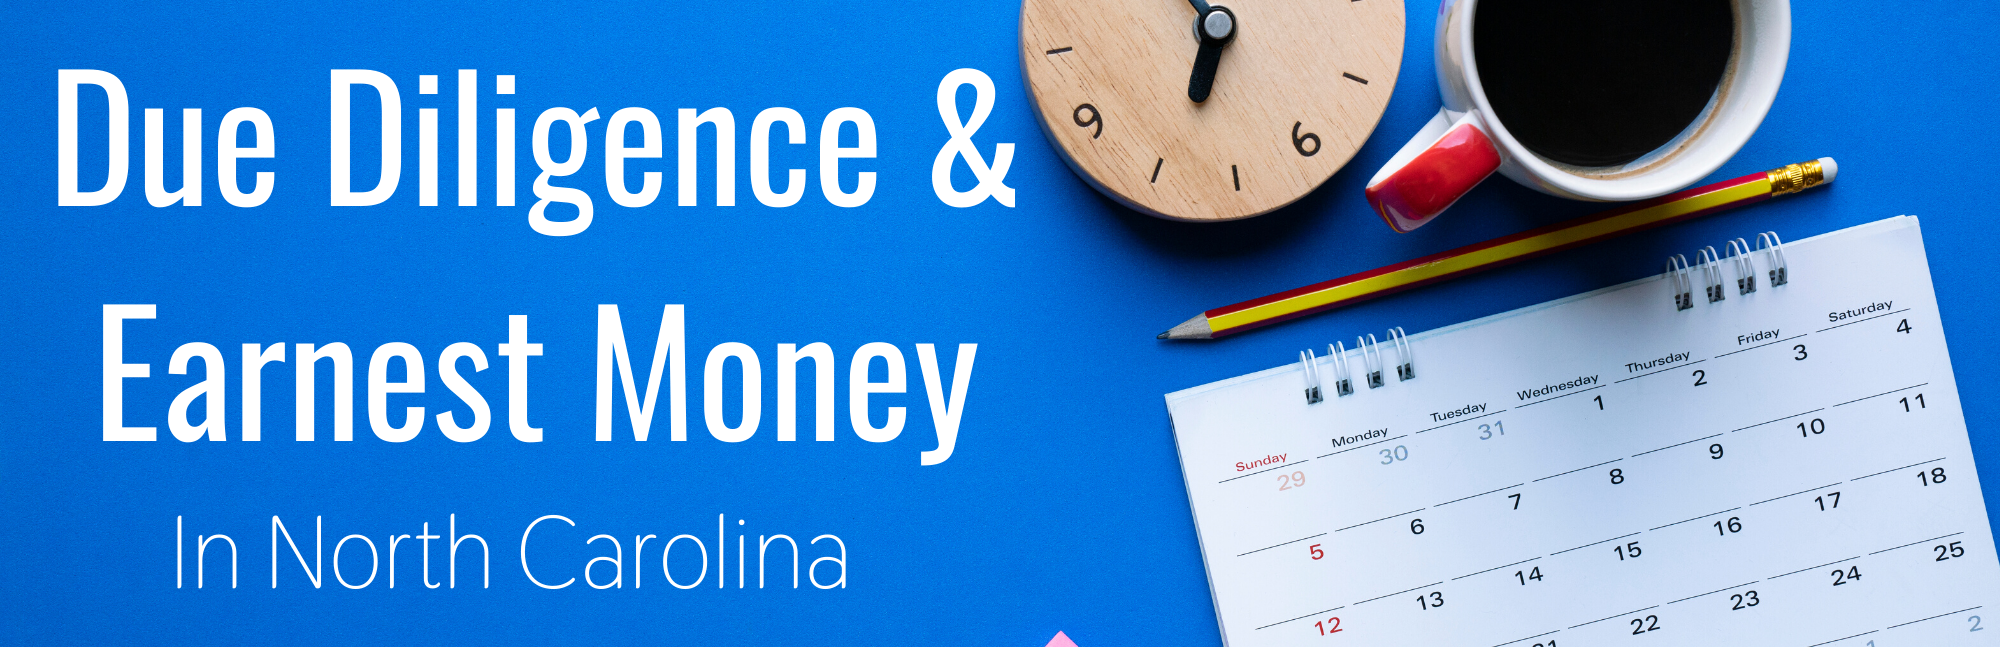 Due Diligence and Earnest Money in North Carolina